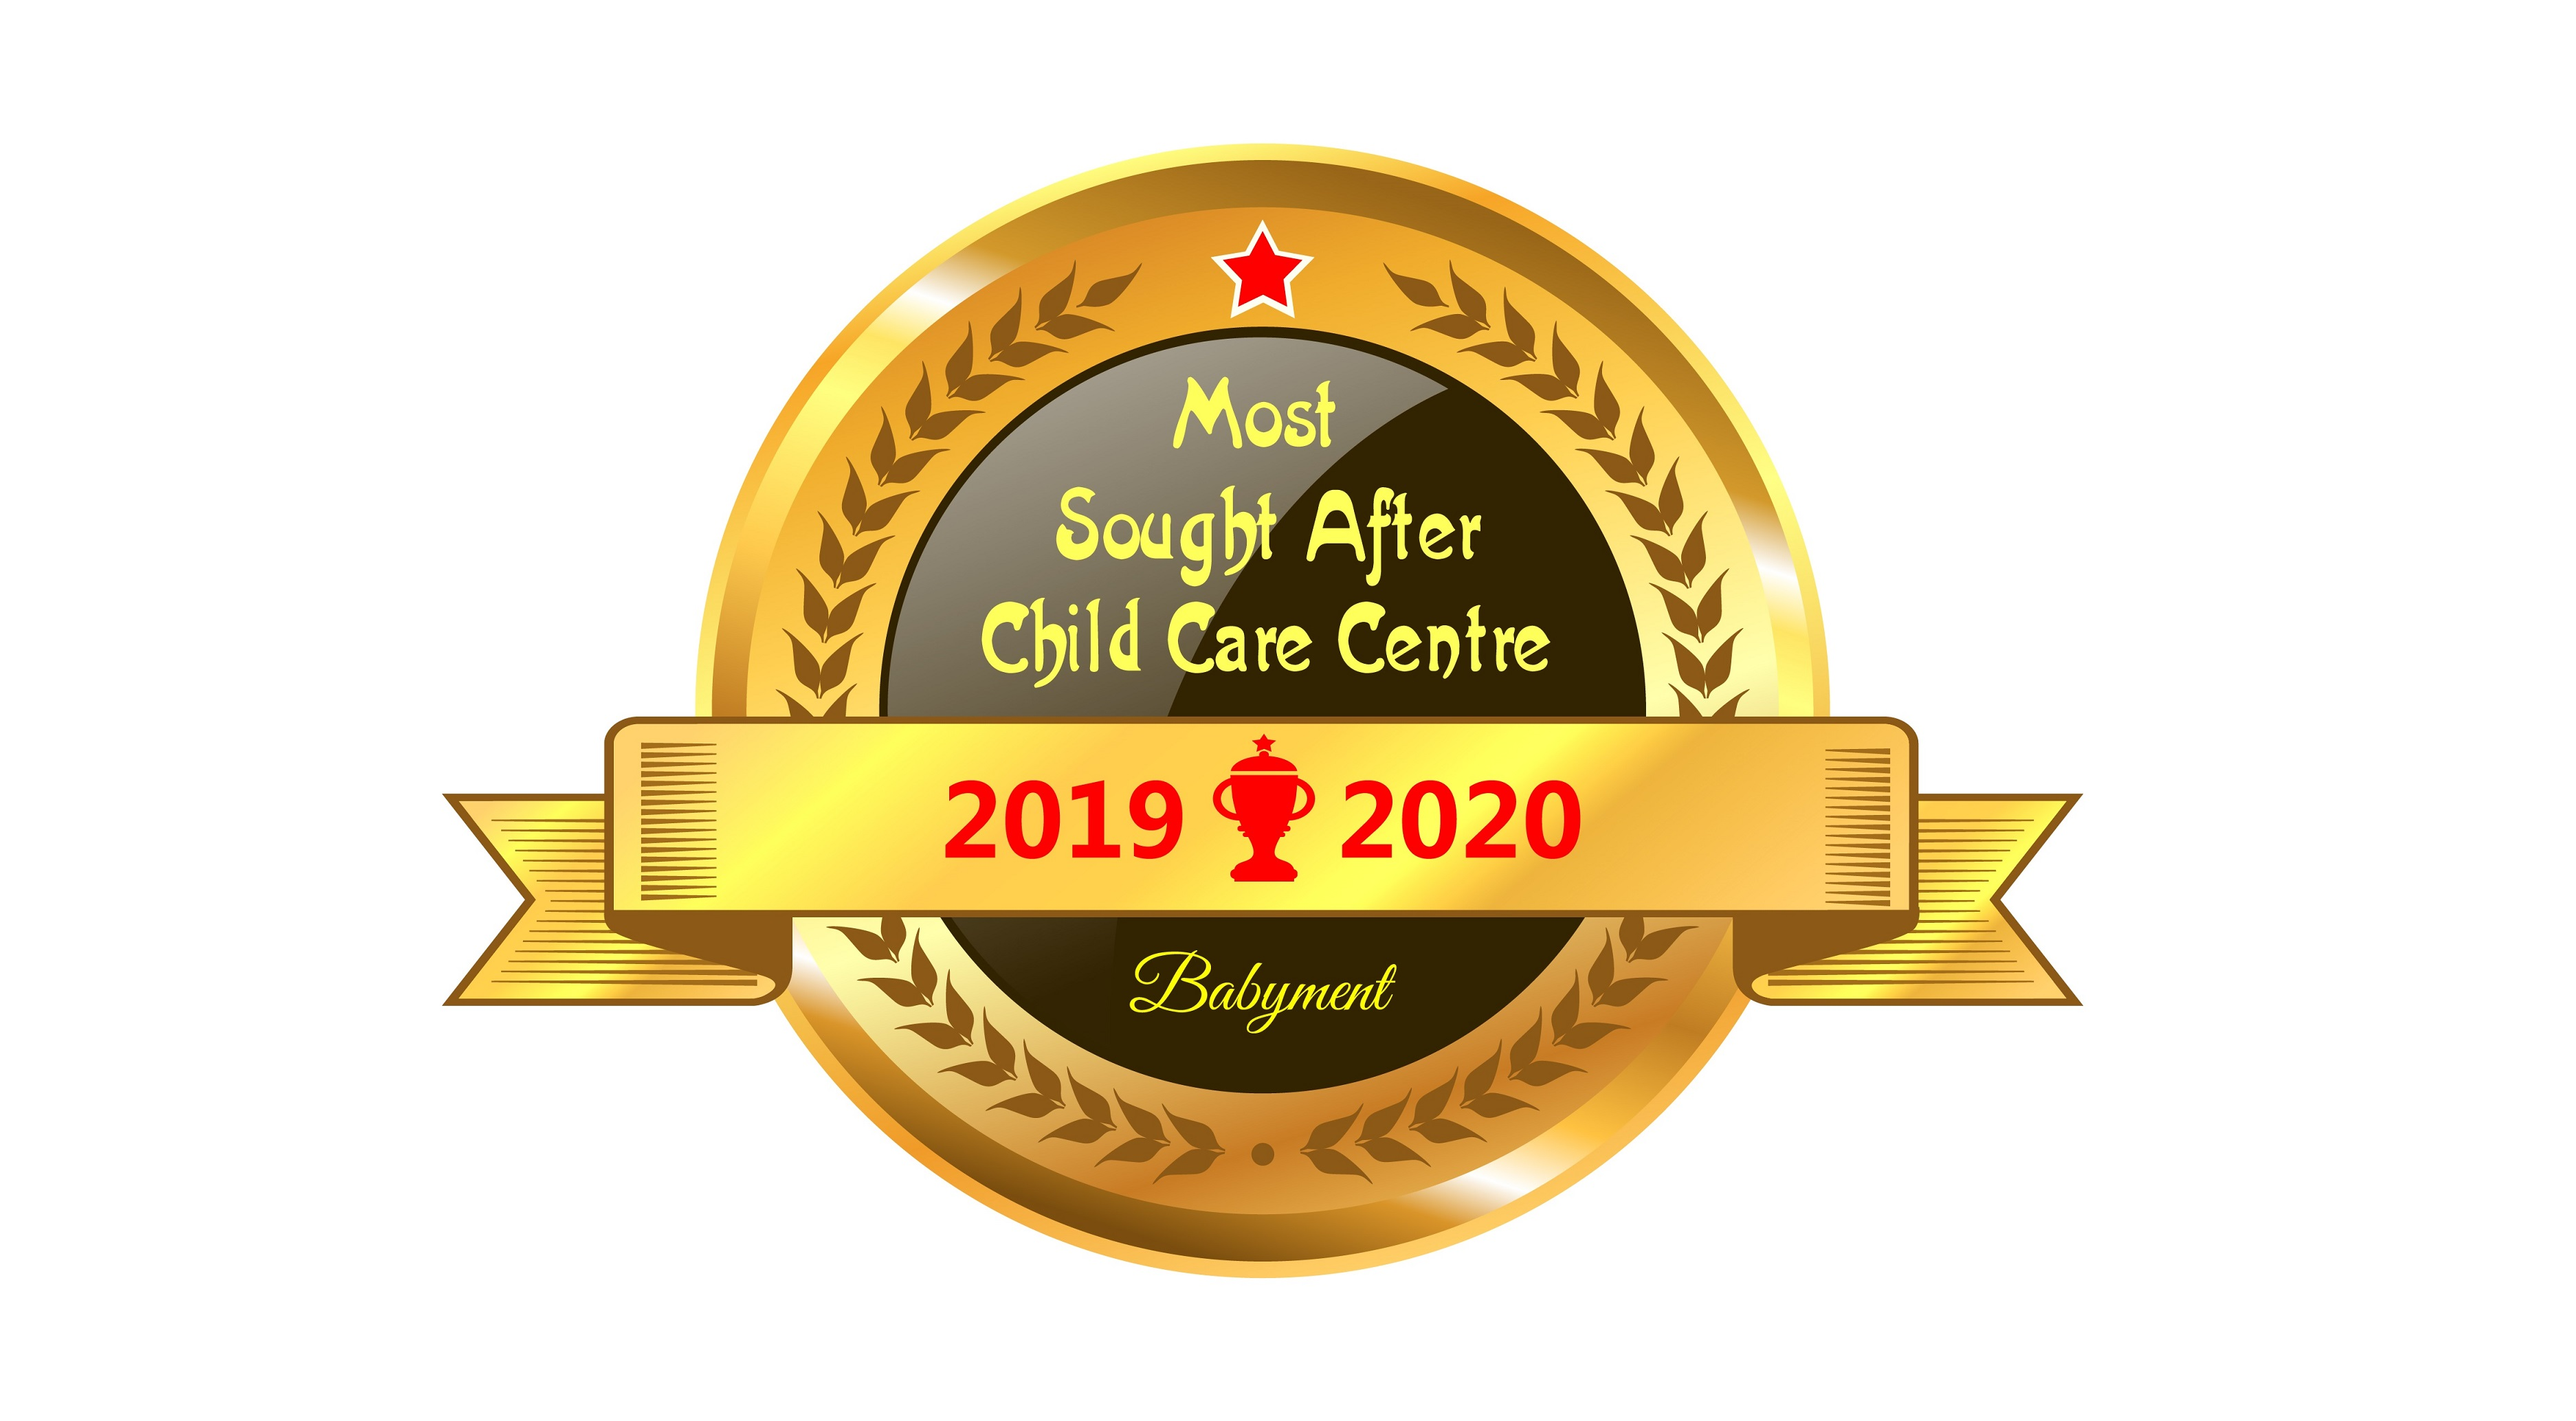 Most sought after child care centres in Singapore